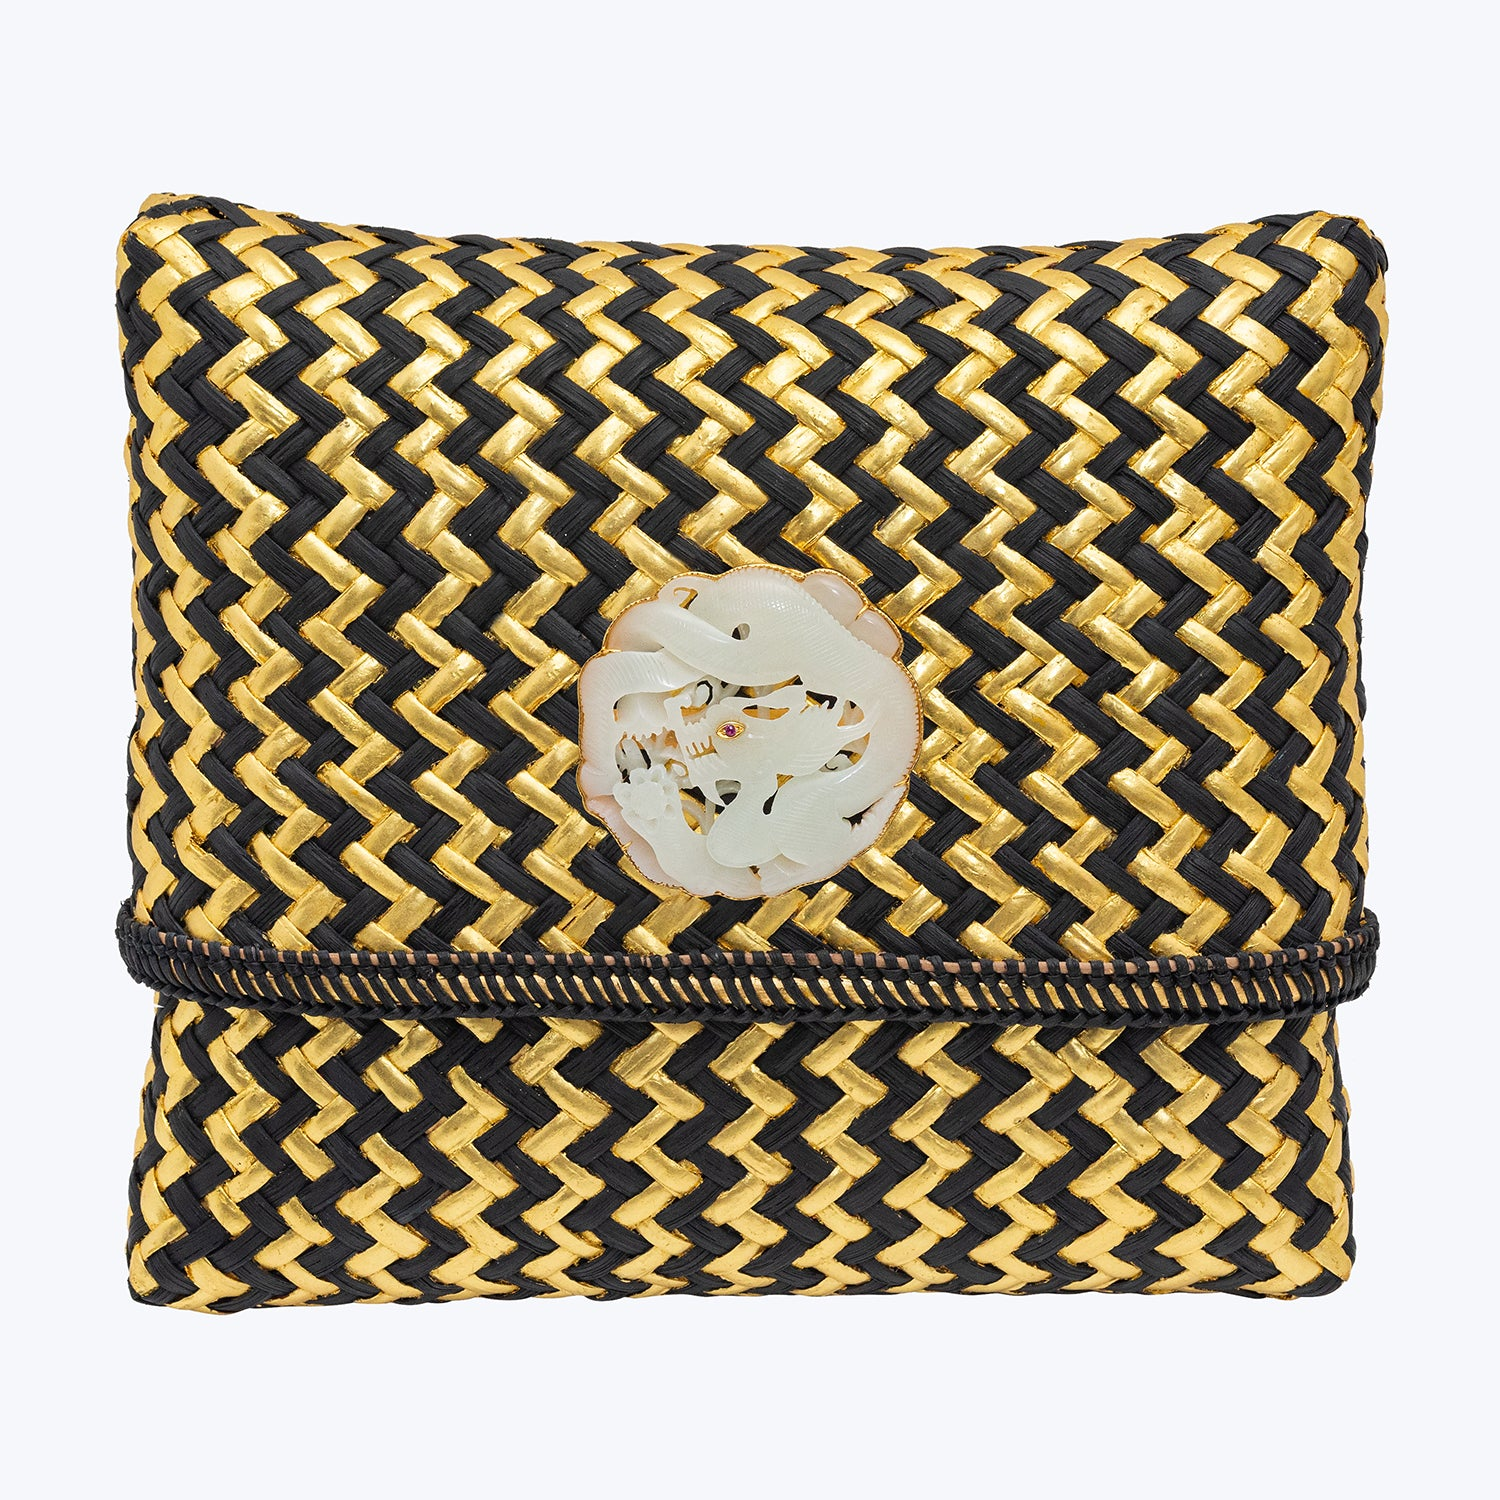 Rattan Handbag with Carved Nephrite